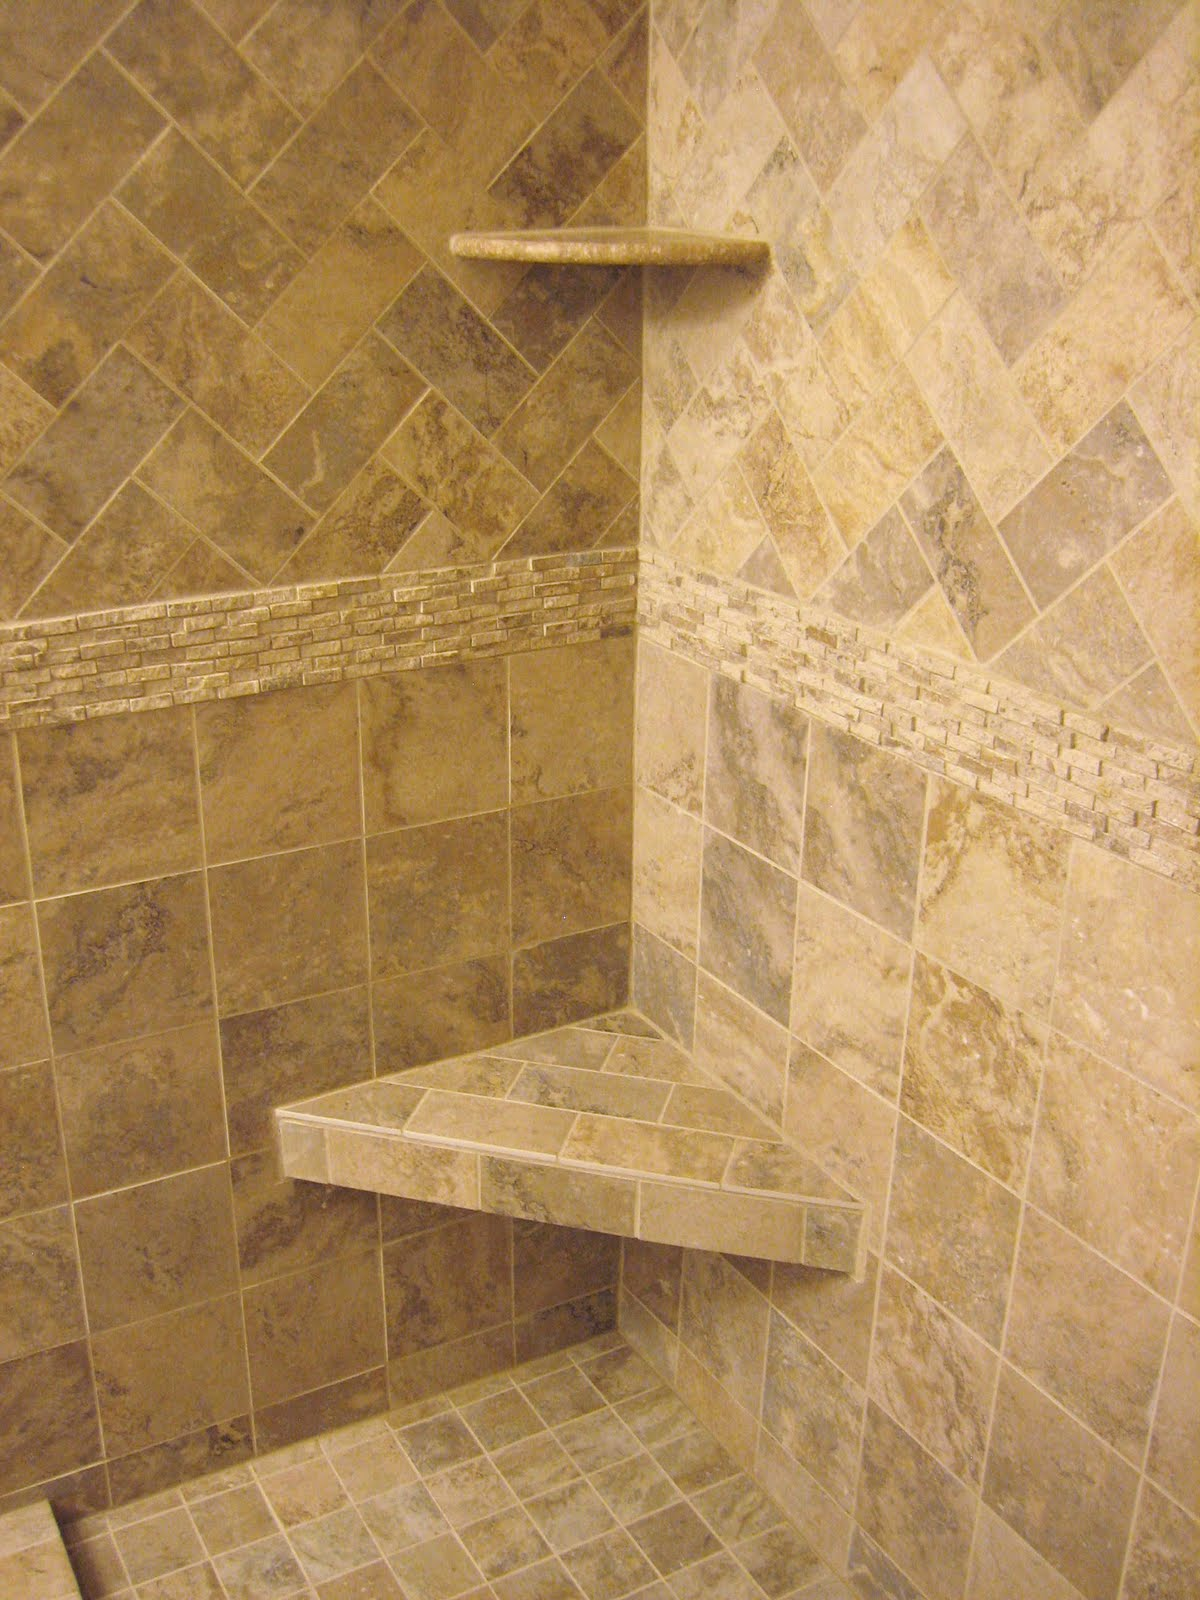 Shower Wall Tile Design love everything in this tub insert neutral warm tile with accent love everything in this tub insert neutral warm tile with accent strips shelf Bathroom Inspiration Immaculate Corner Caddy Bath Over Small